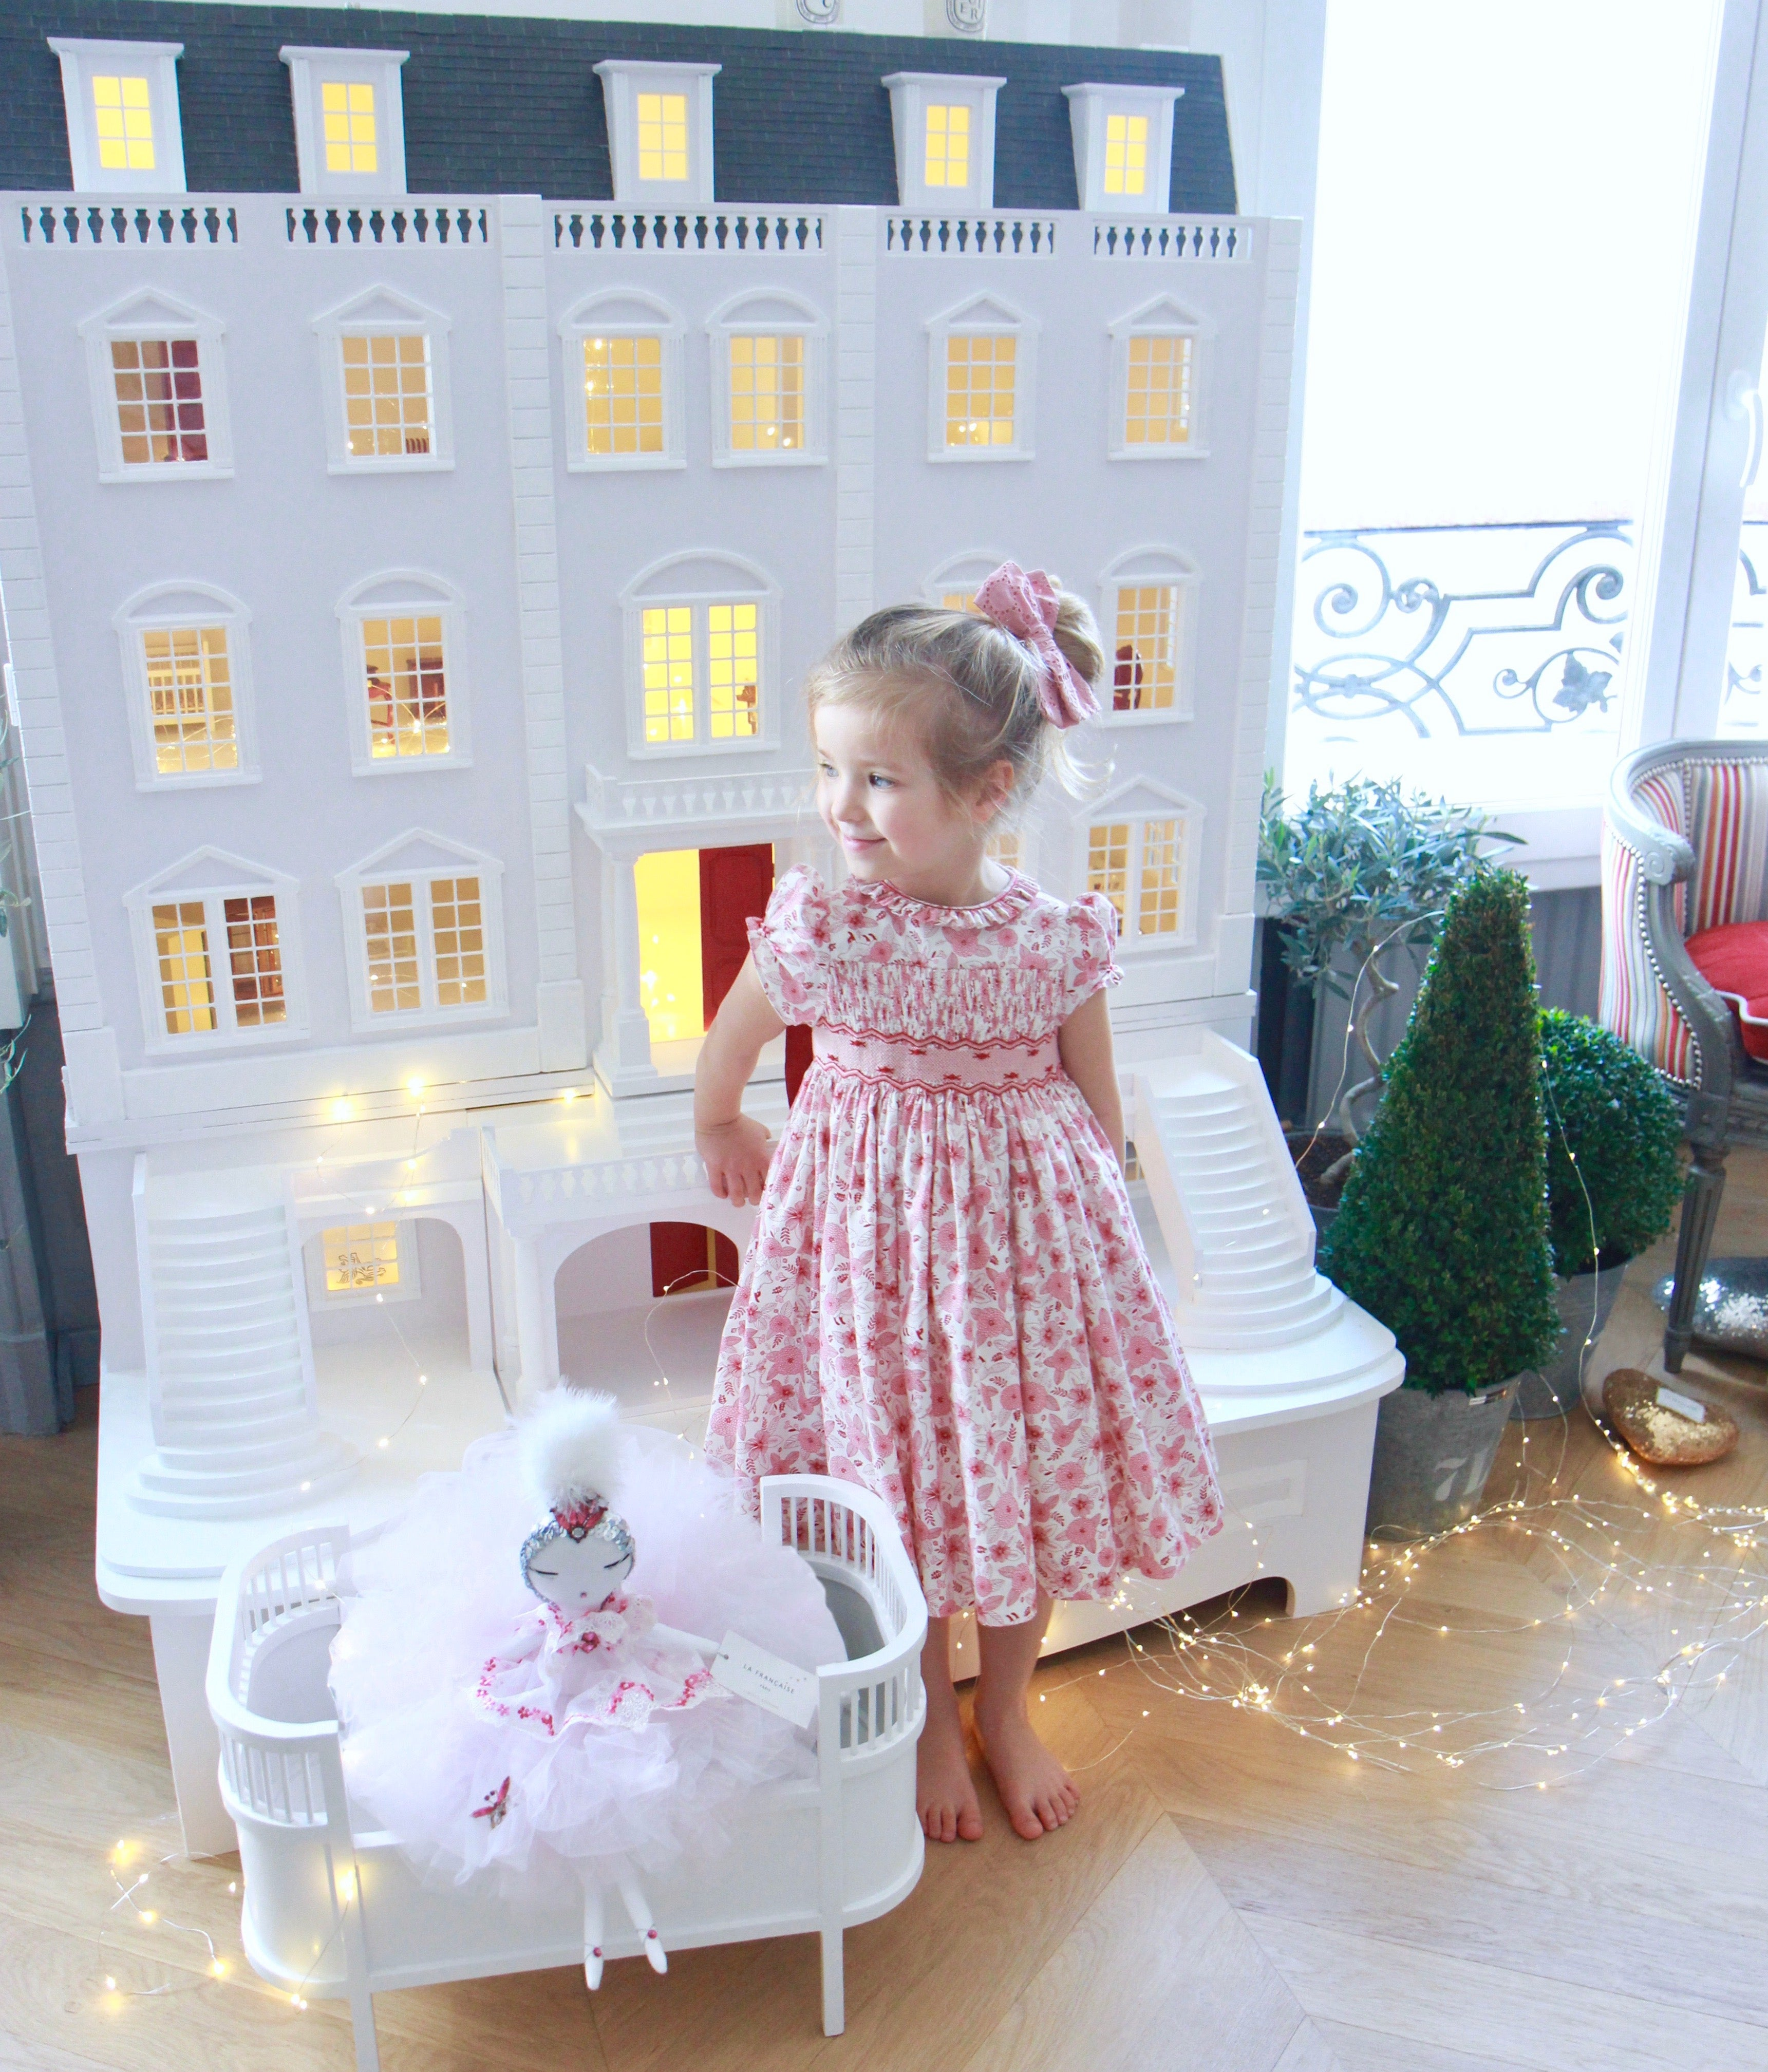 handmade smocked dress - Parisian style - little girl's doll house